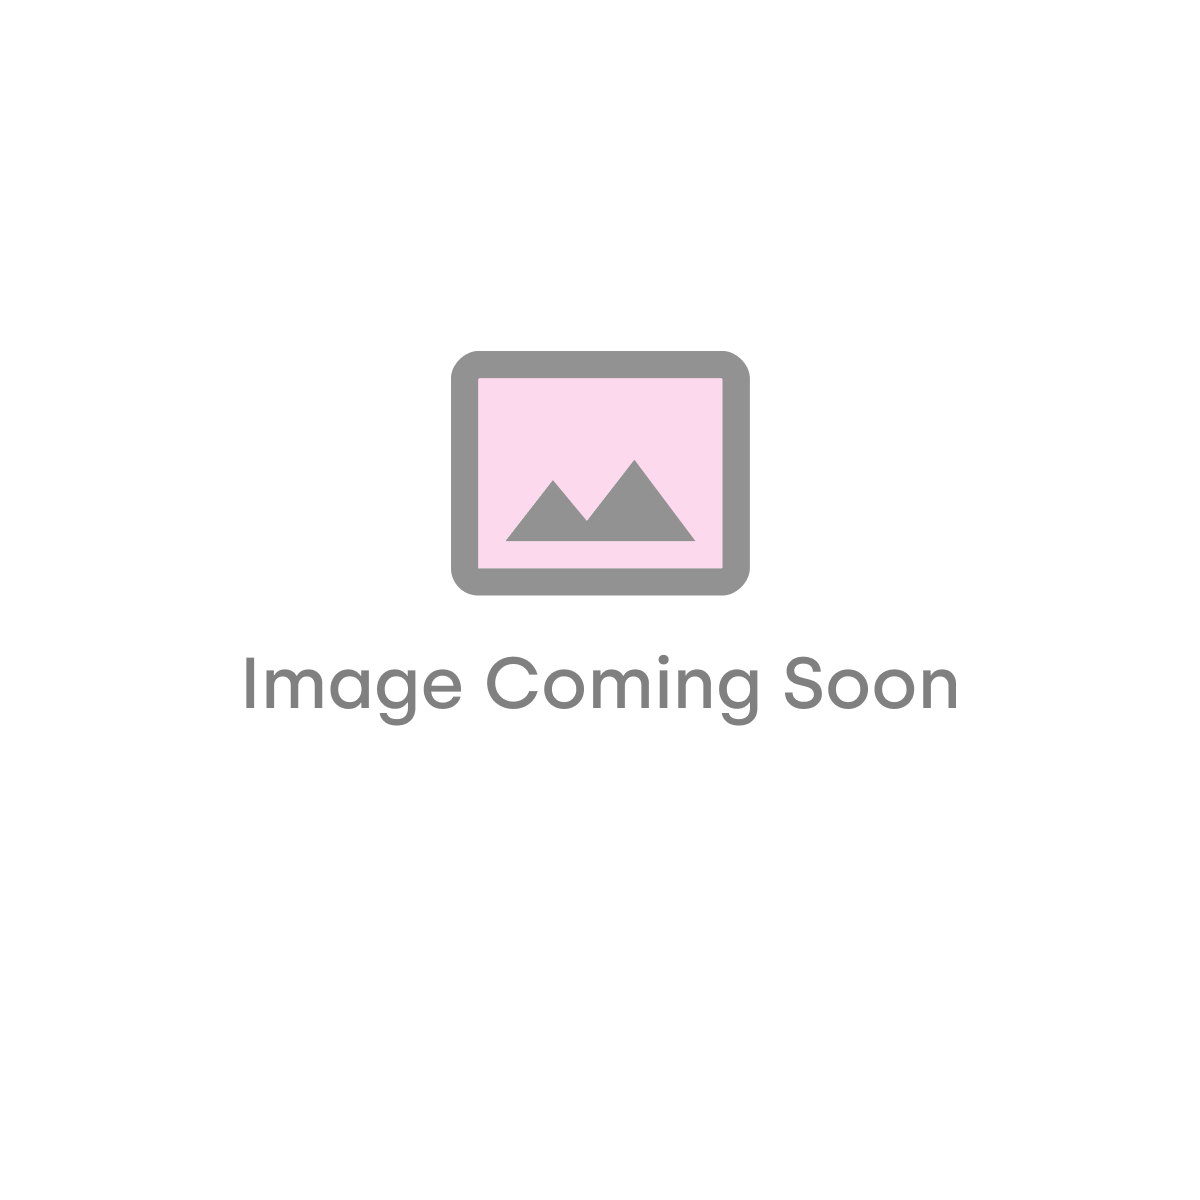 Triton T80z 8.5kW Fast-Fit Electric Shower - White (10875)